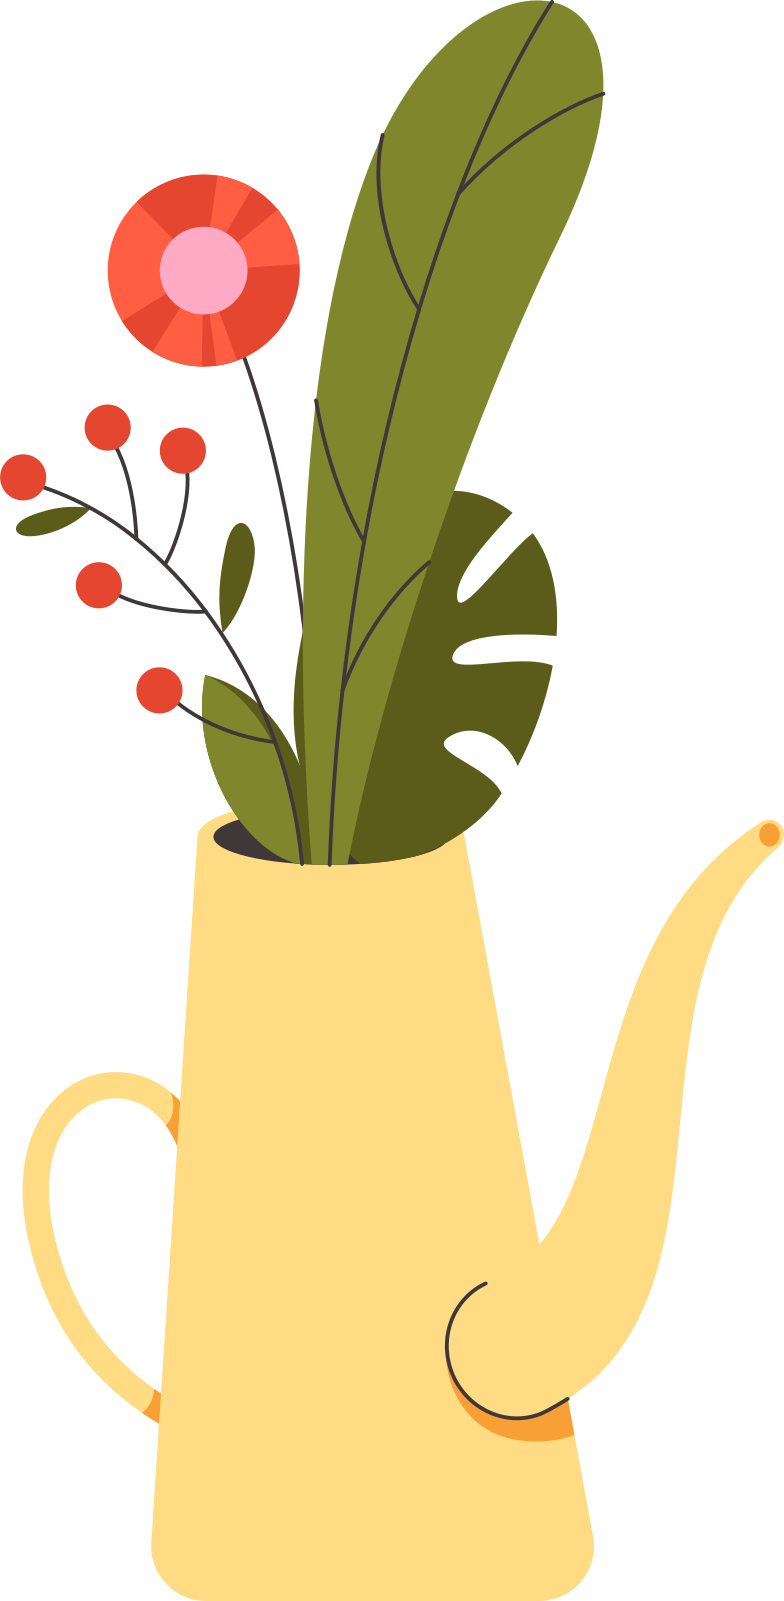 style flowers in a watering can Vector images in PNG and SVG | Icons8 Illustrations